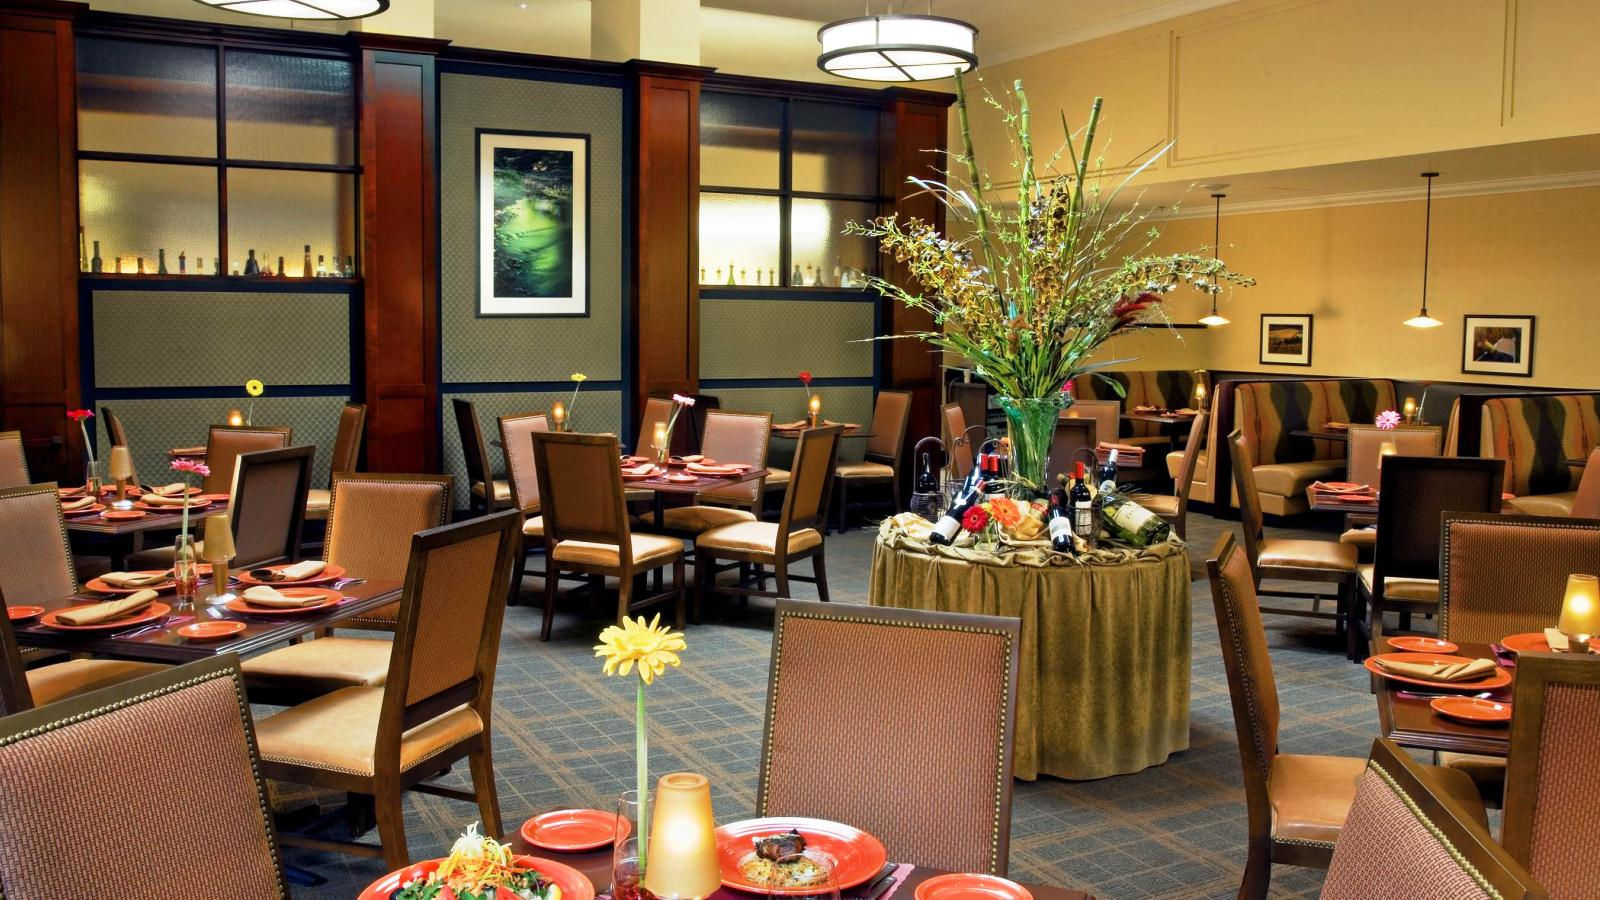 Portland Airport Meeting Space - Columbia Grill and Bar Restaurant